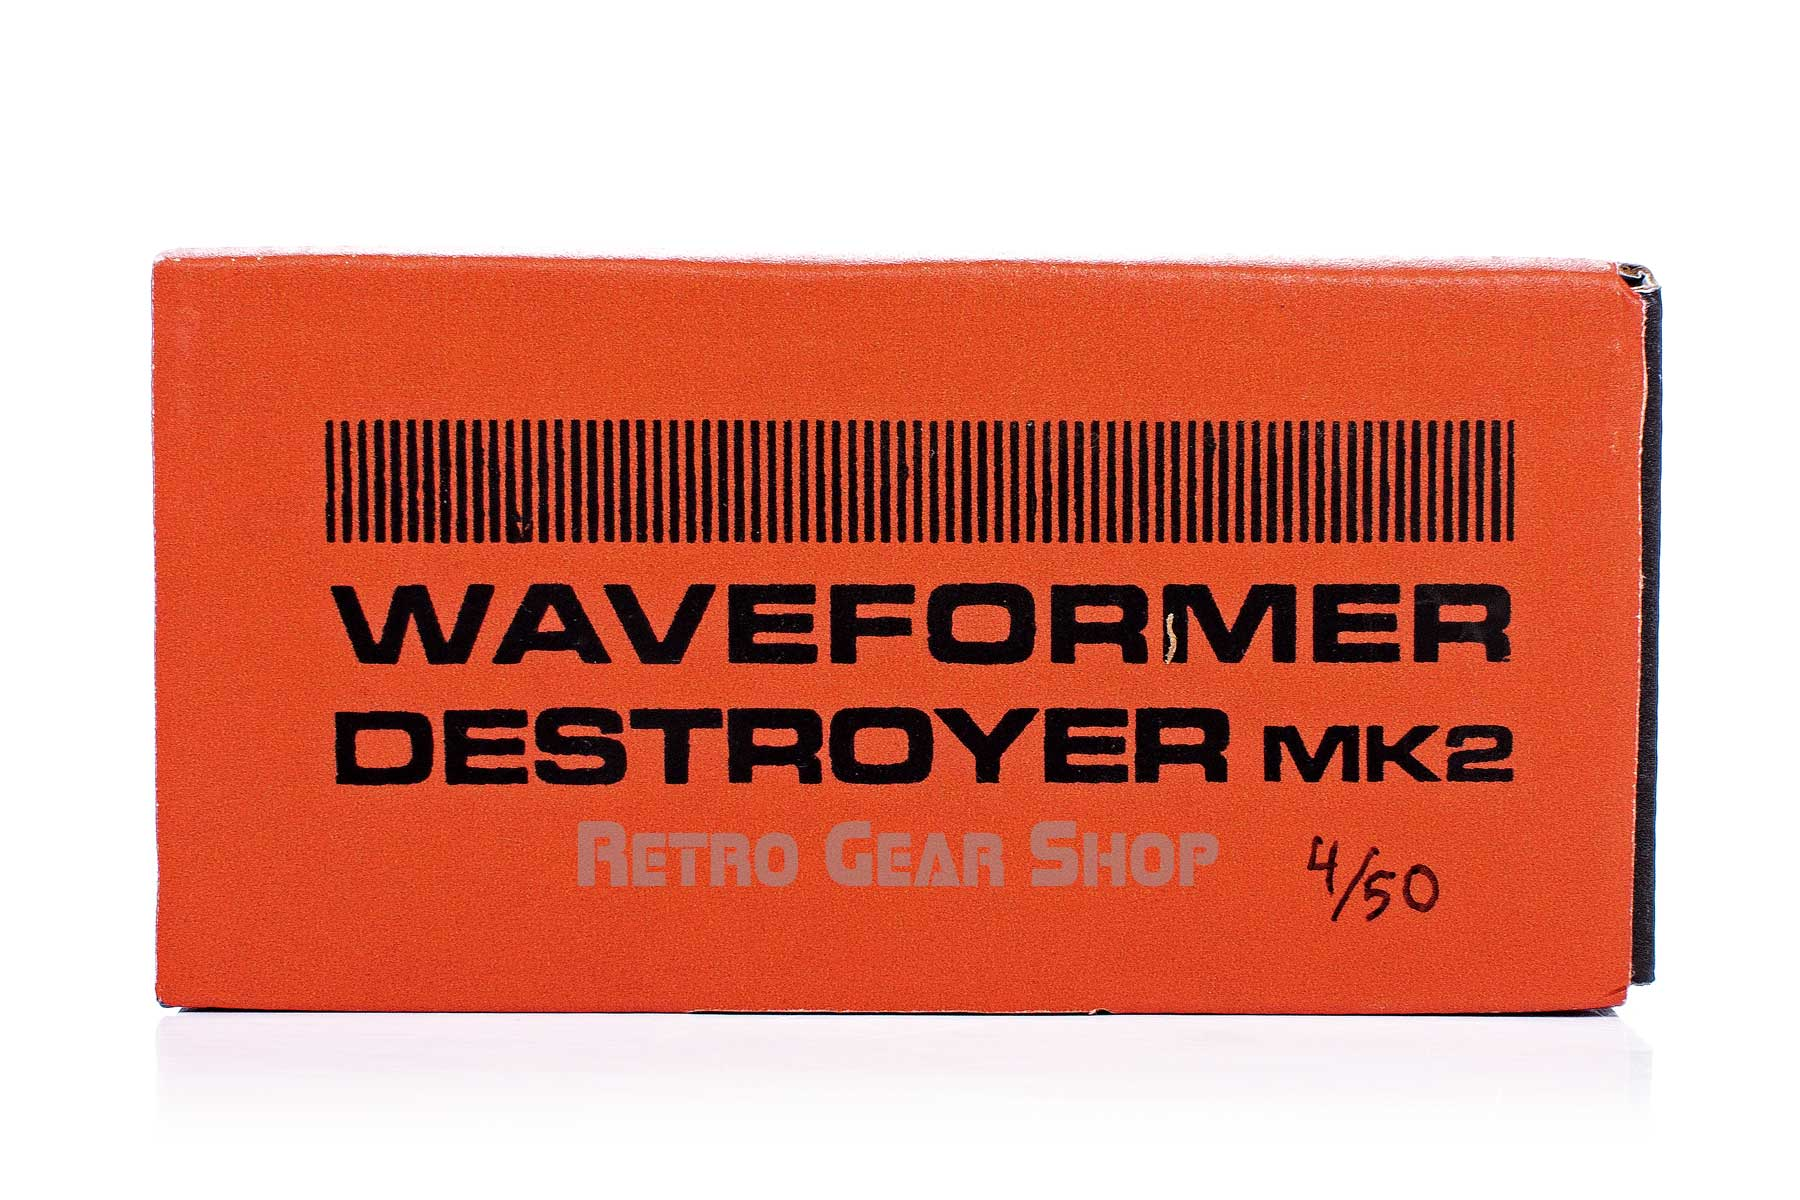 Death By Audio Waveformer Destroyer Mk2 Custom Box Serial Number